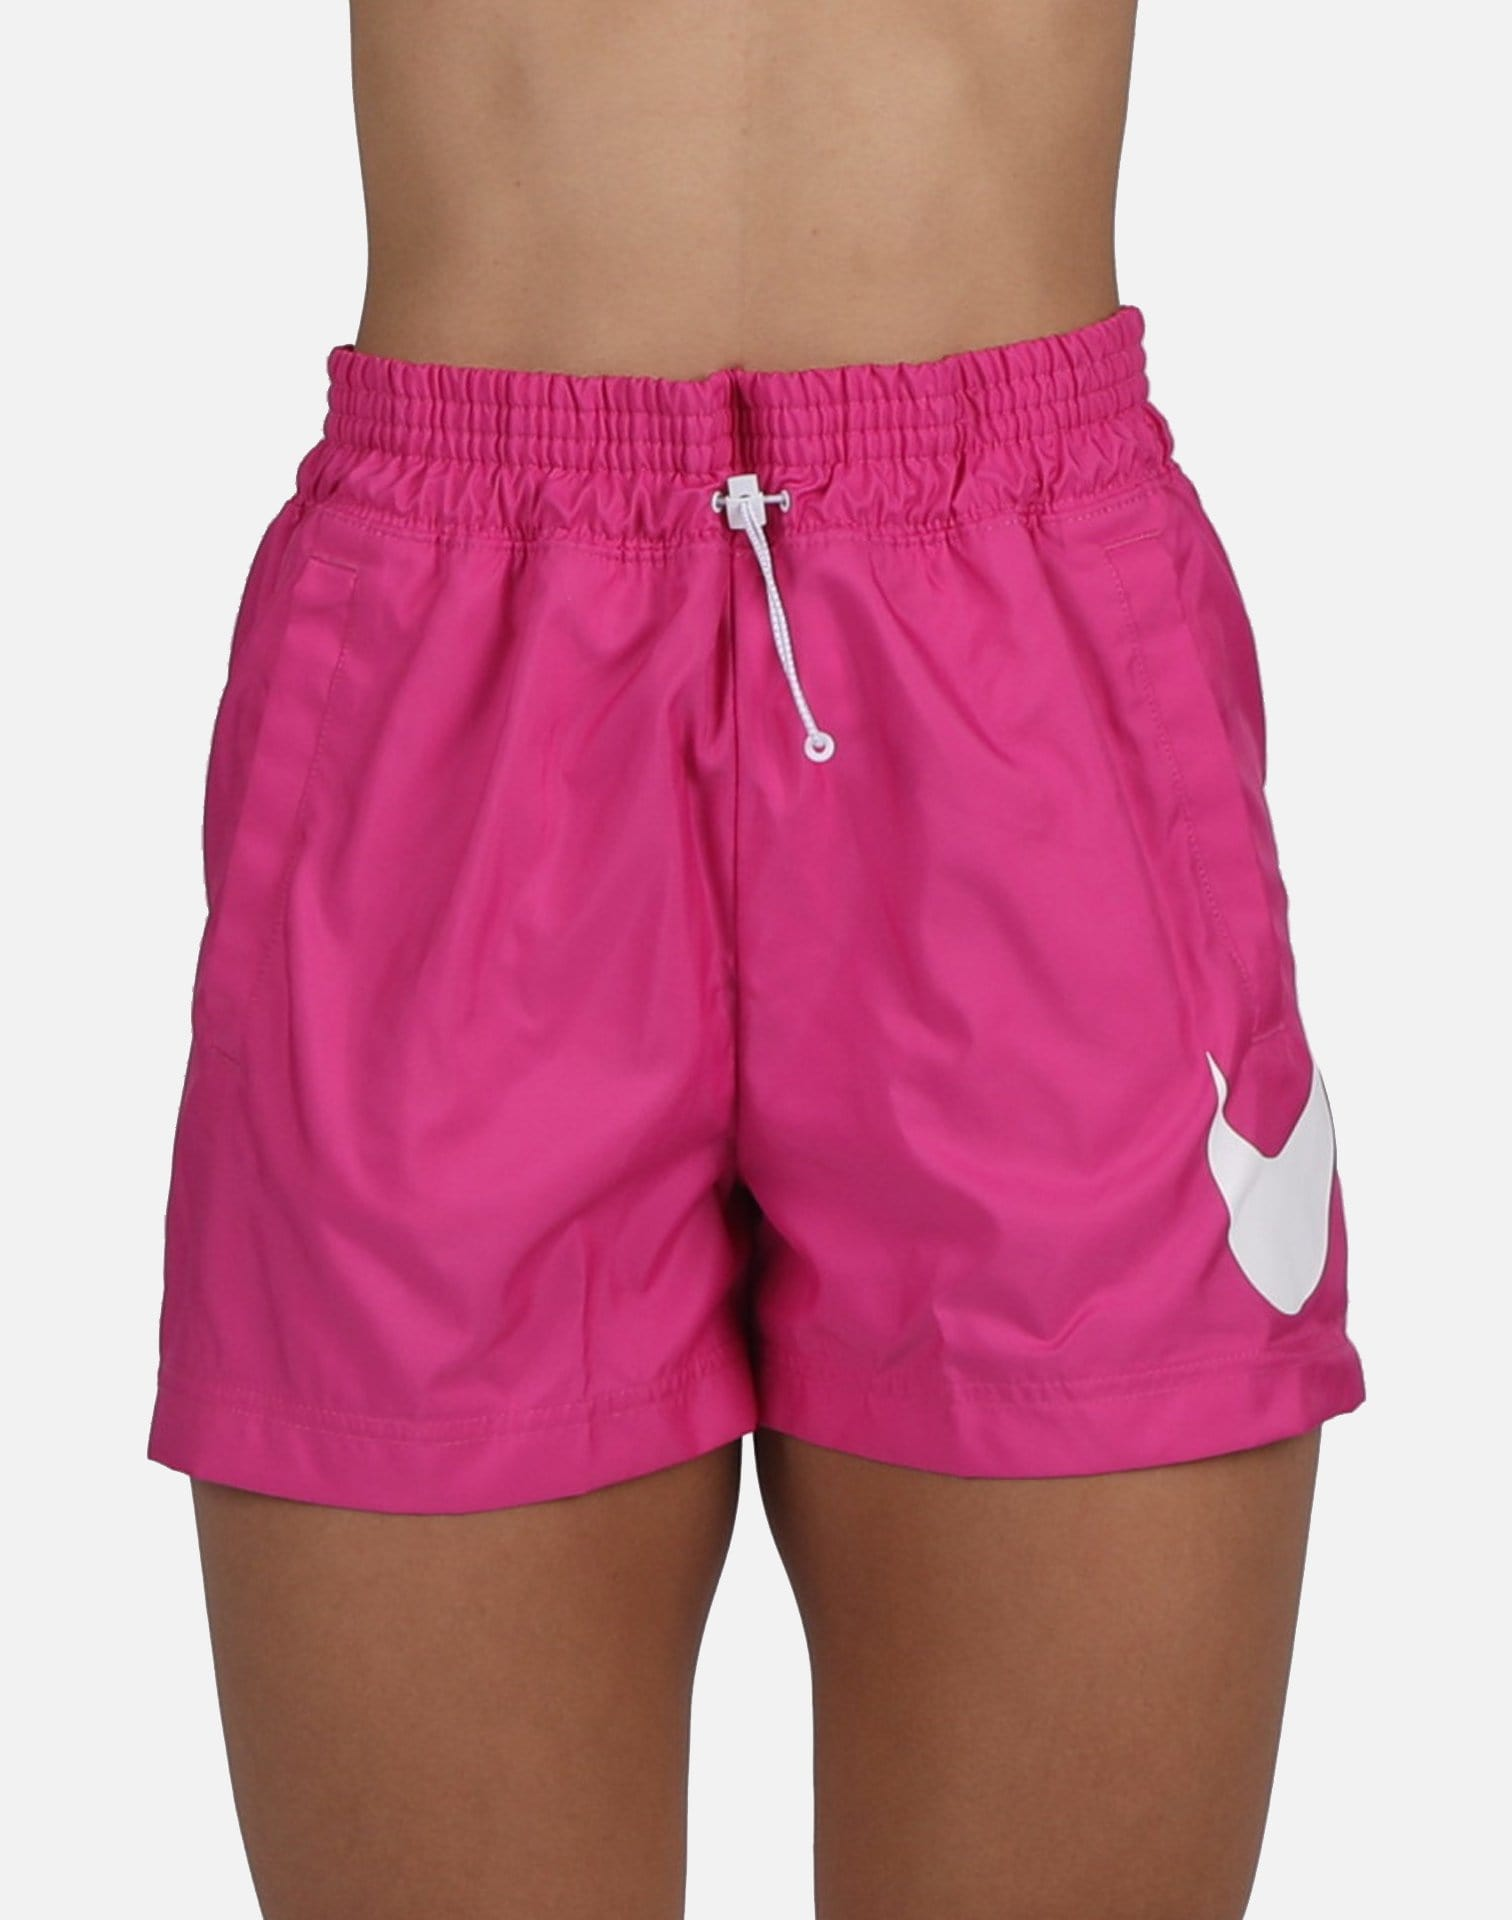 NSW SWOOSH WOVEN SHORTS